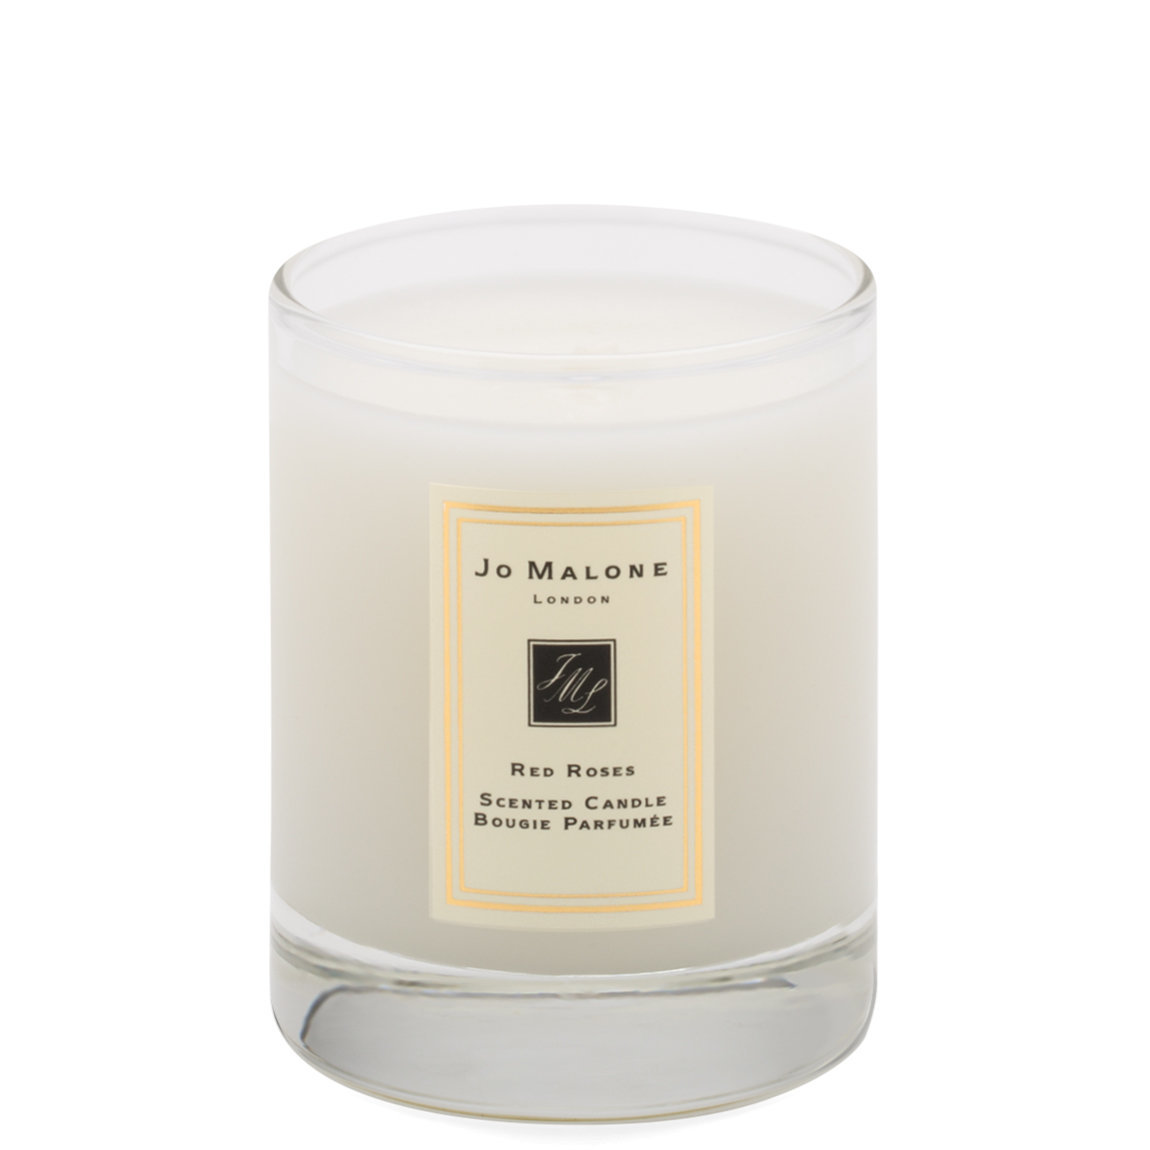 Jo Malone London Red Roses Scented Candle product smear.